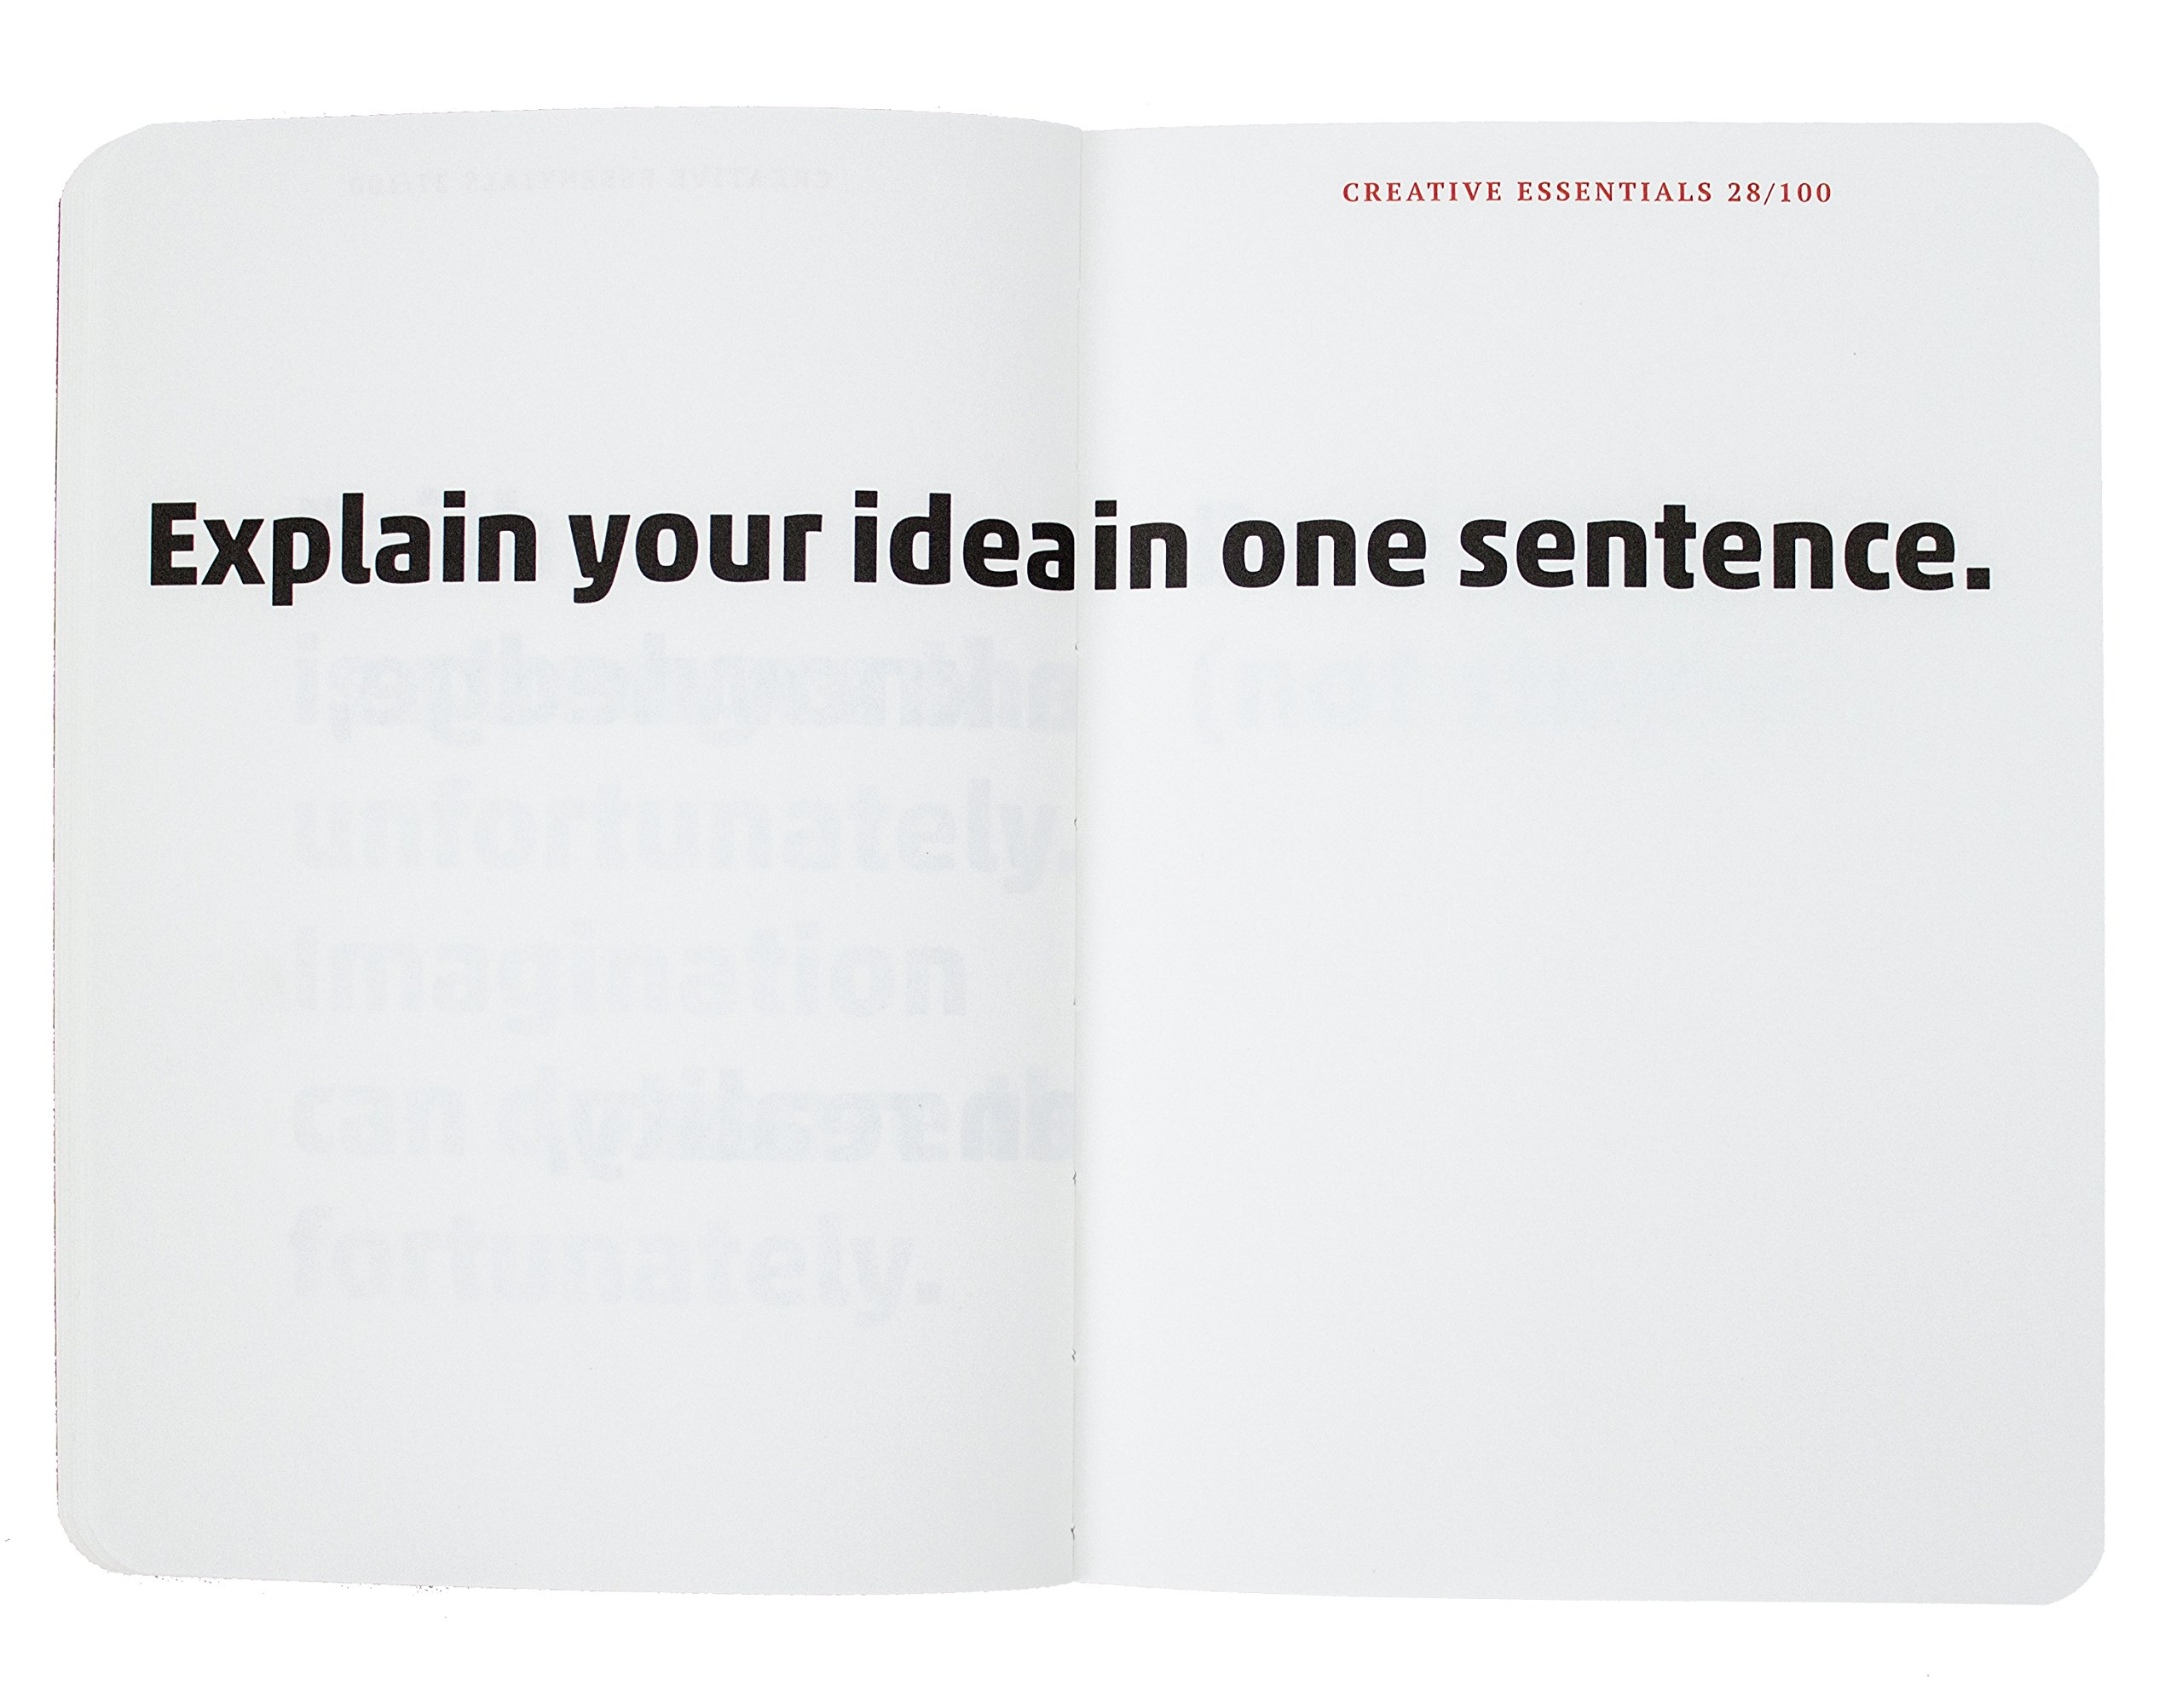 do-it-with-love-creative-quotes-book-moleskine-copywriter-2